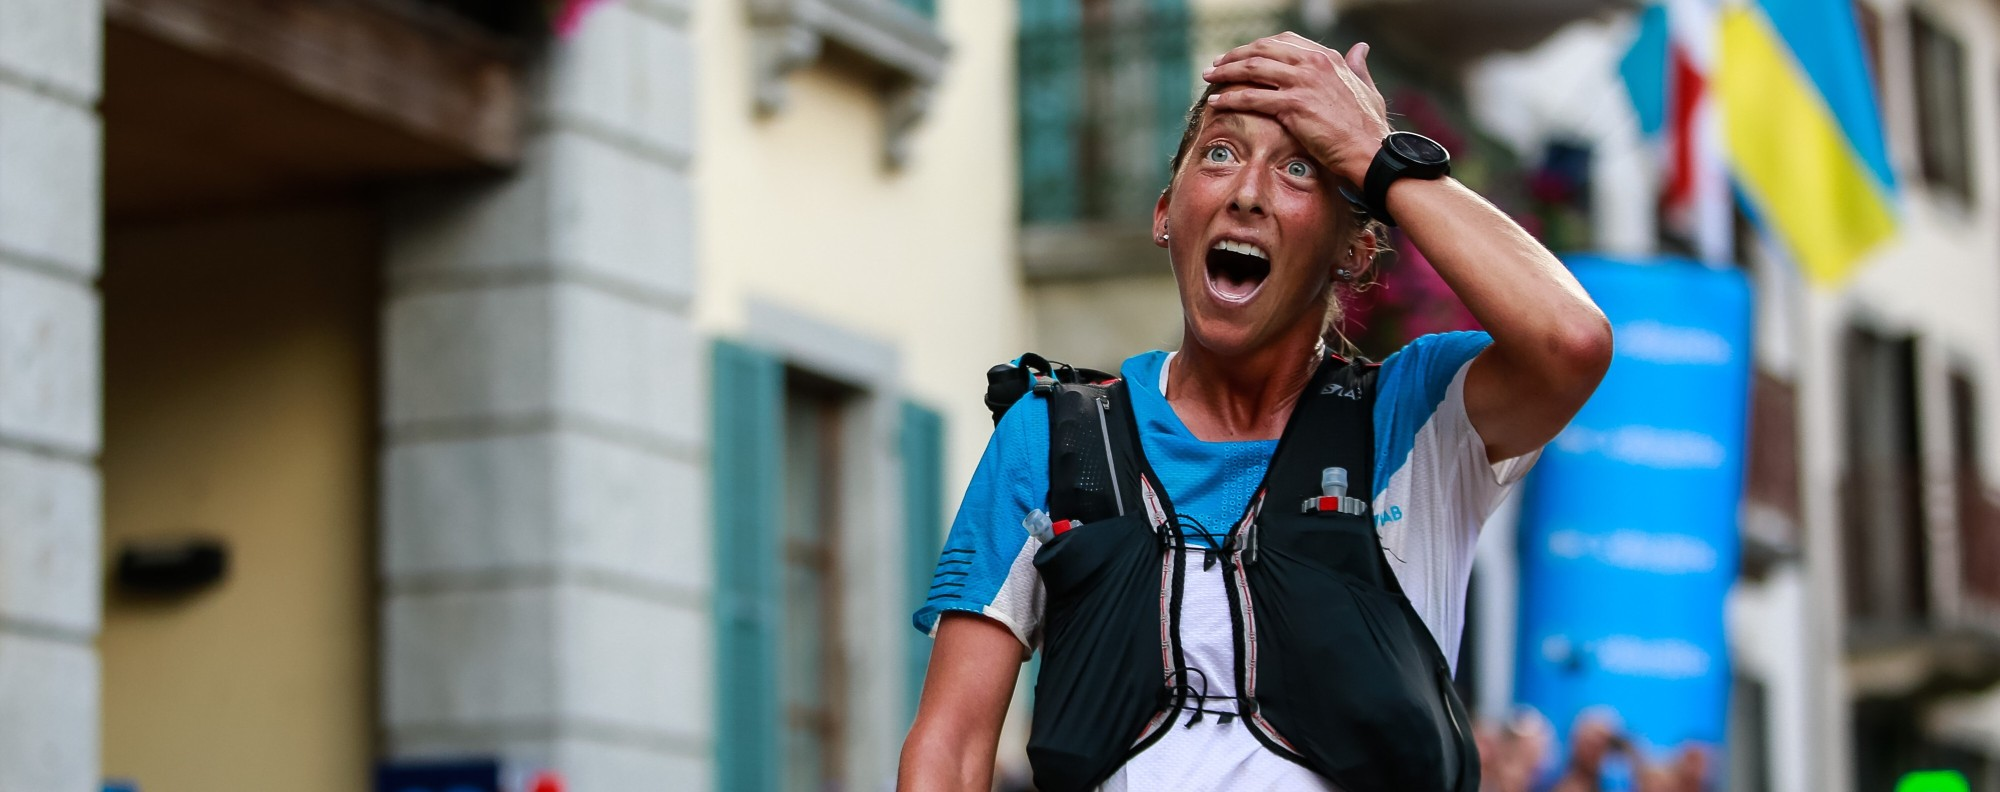 Courtney Dauwalter wins the UTMB by more than an hour. Photo: UTMB/Christophe Pallot